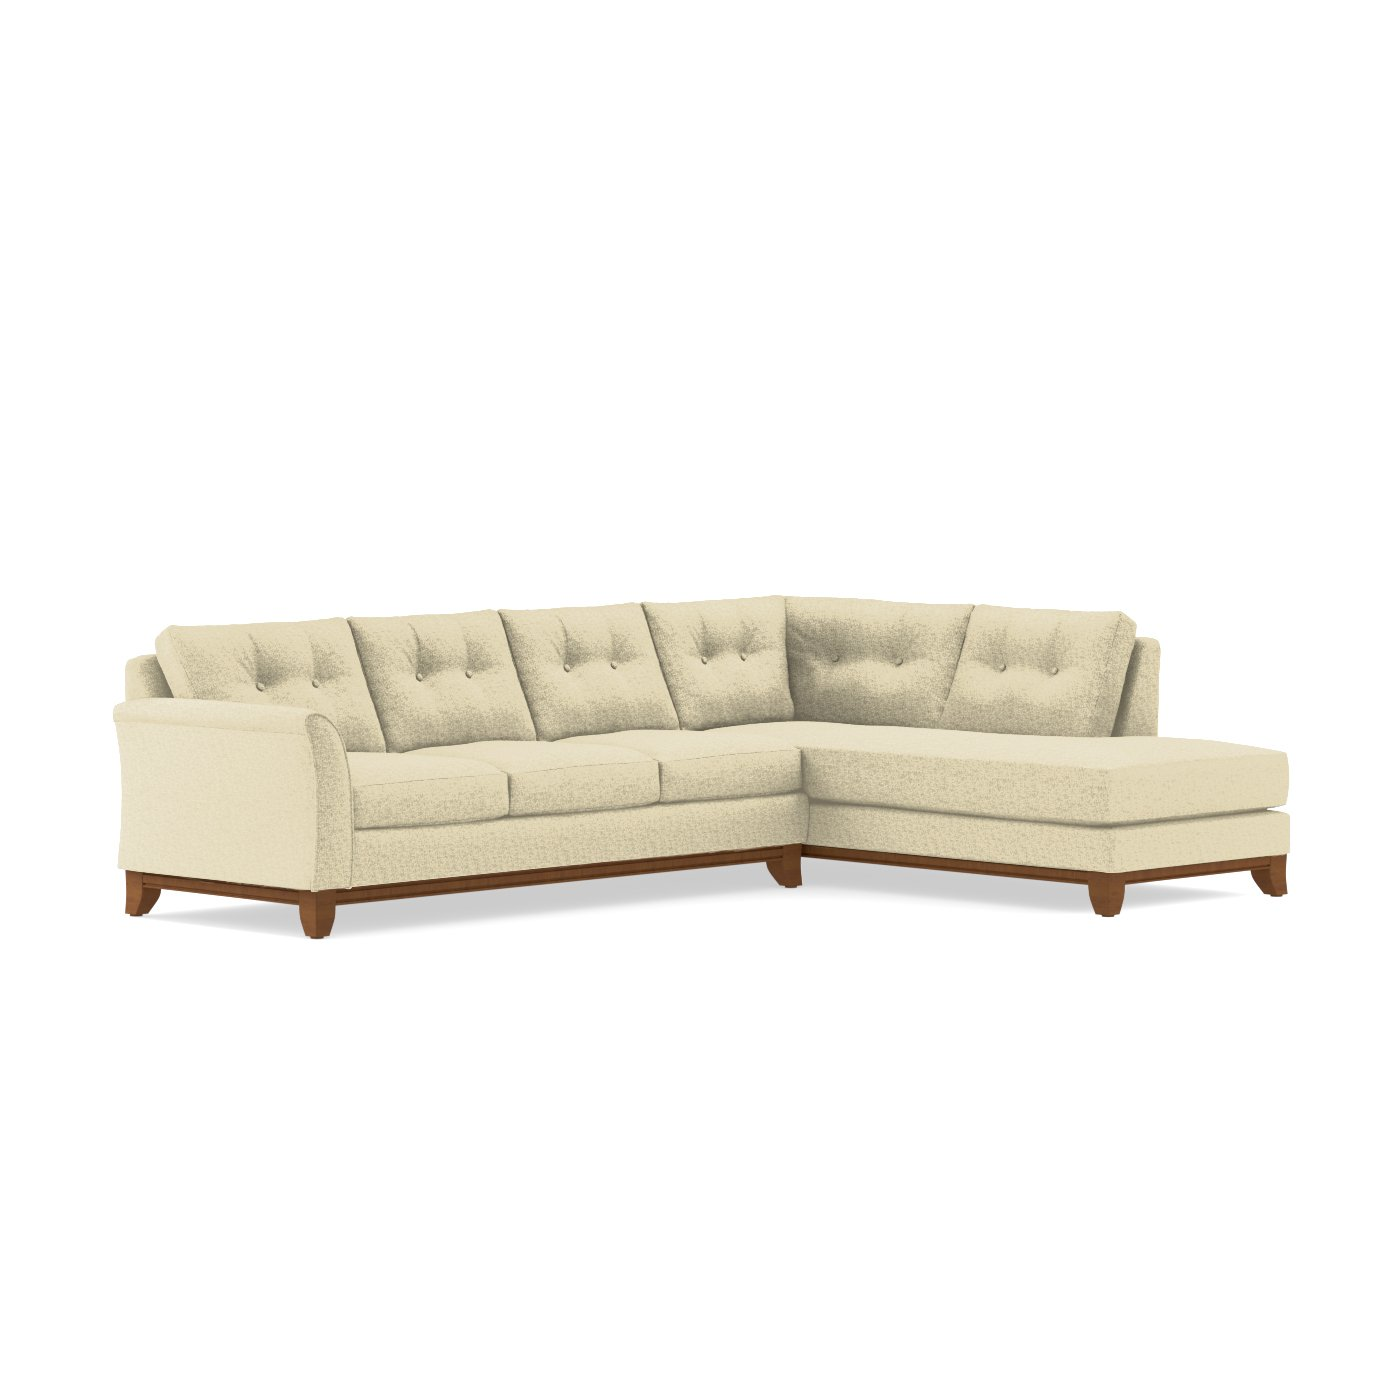 Marco 2pc Sectional Sofa  sc 1 st  Apt2B : marco sectional - Sectionals, Sofas & Couches